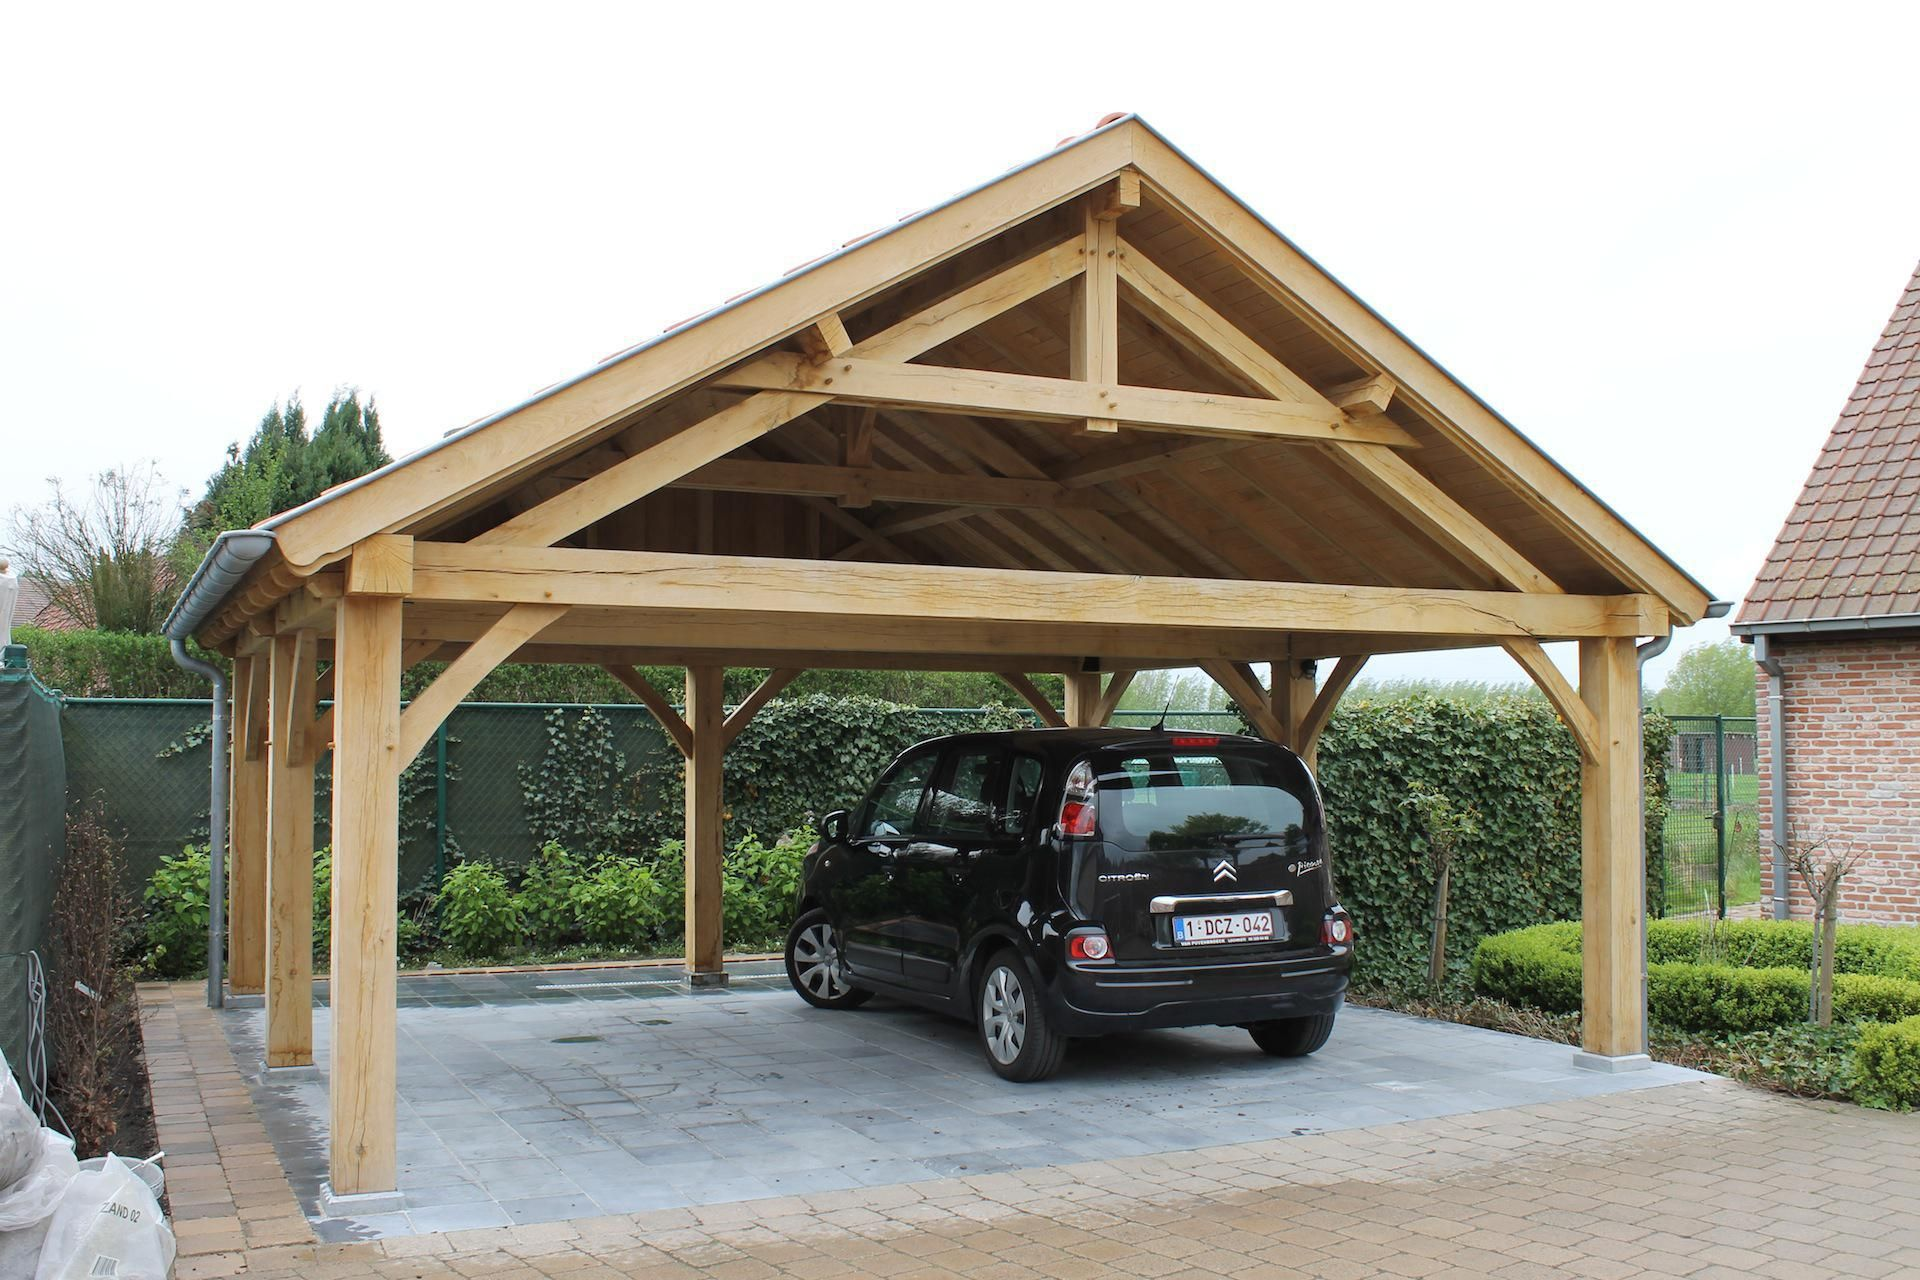 wood carport designs best carports ideas new home decorations carports pinterest. Black Bedroom Furniture Sets. Home Design Ideas